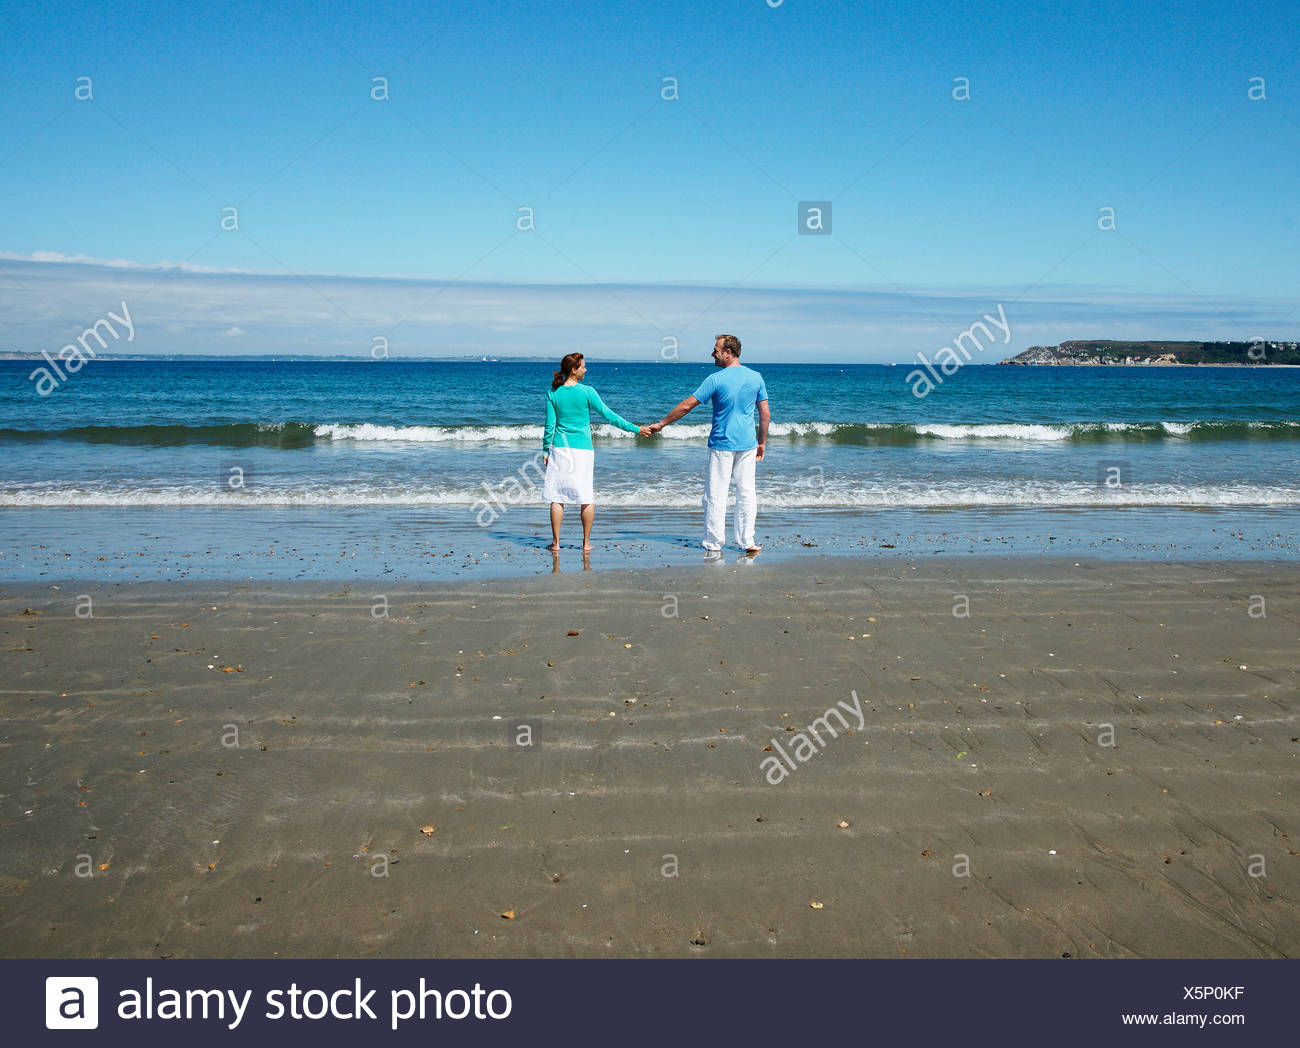 Couple standing at the beach, holding hands, rear view - Stock Image